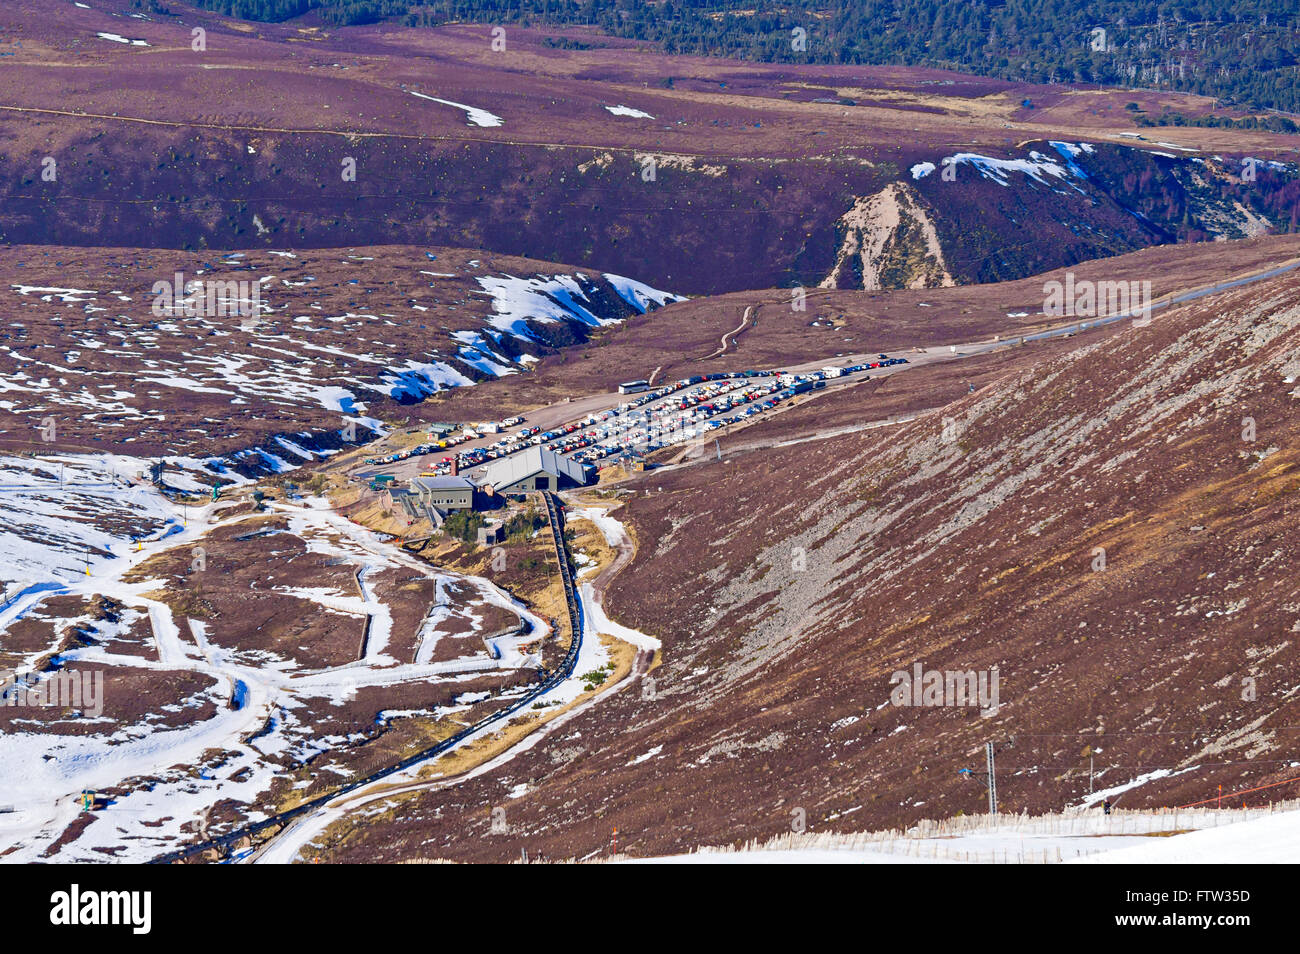 View towards Bottom Station from the Top Station of CairnGorm Mountain railway on Cairn Gorm Speyside Scotland Stock Photo